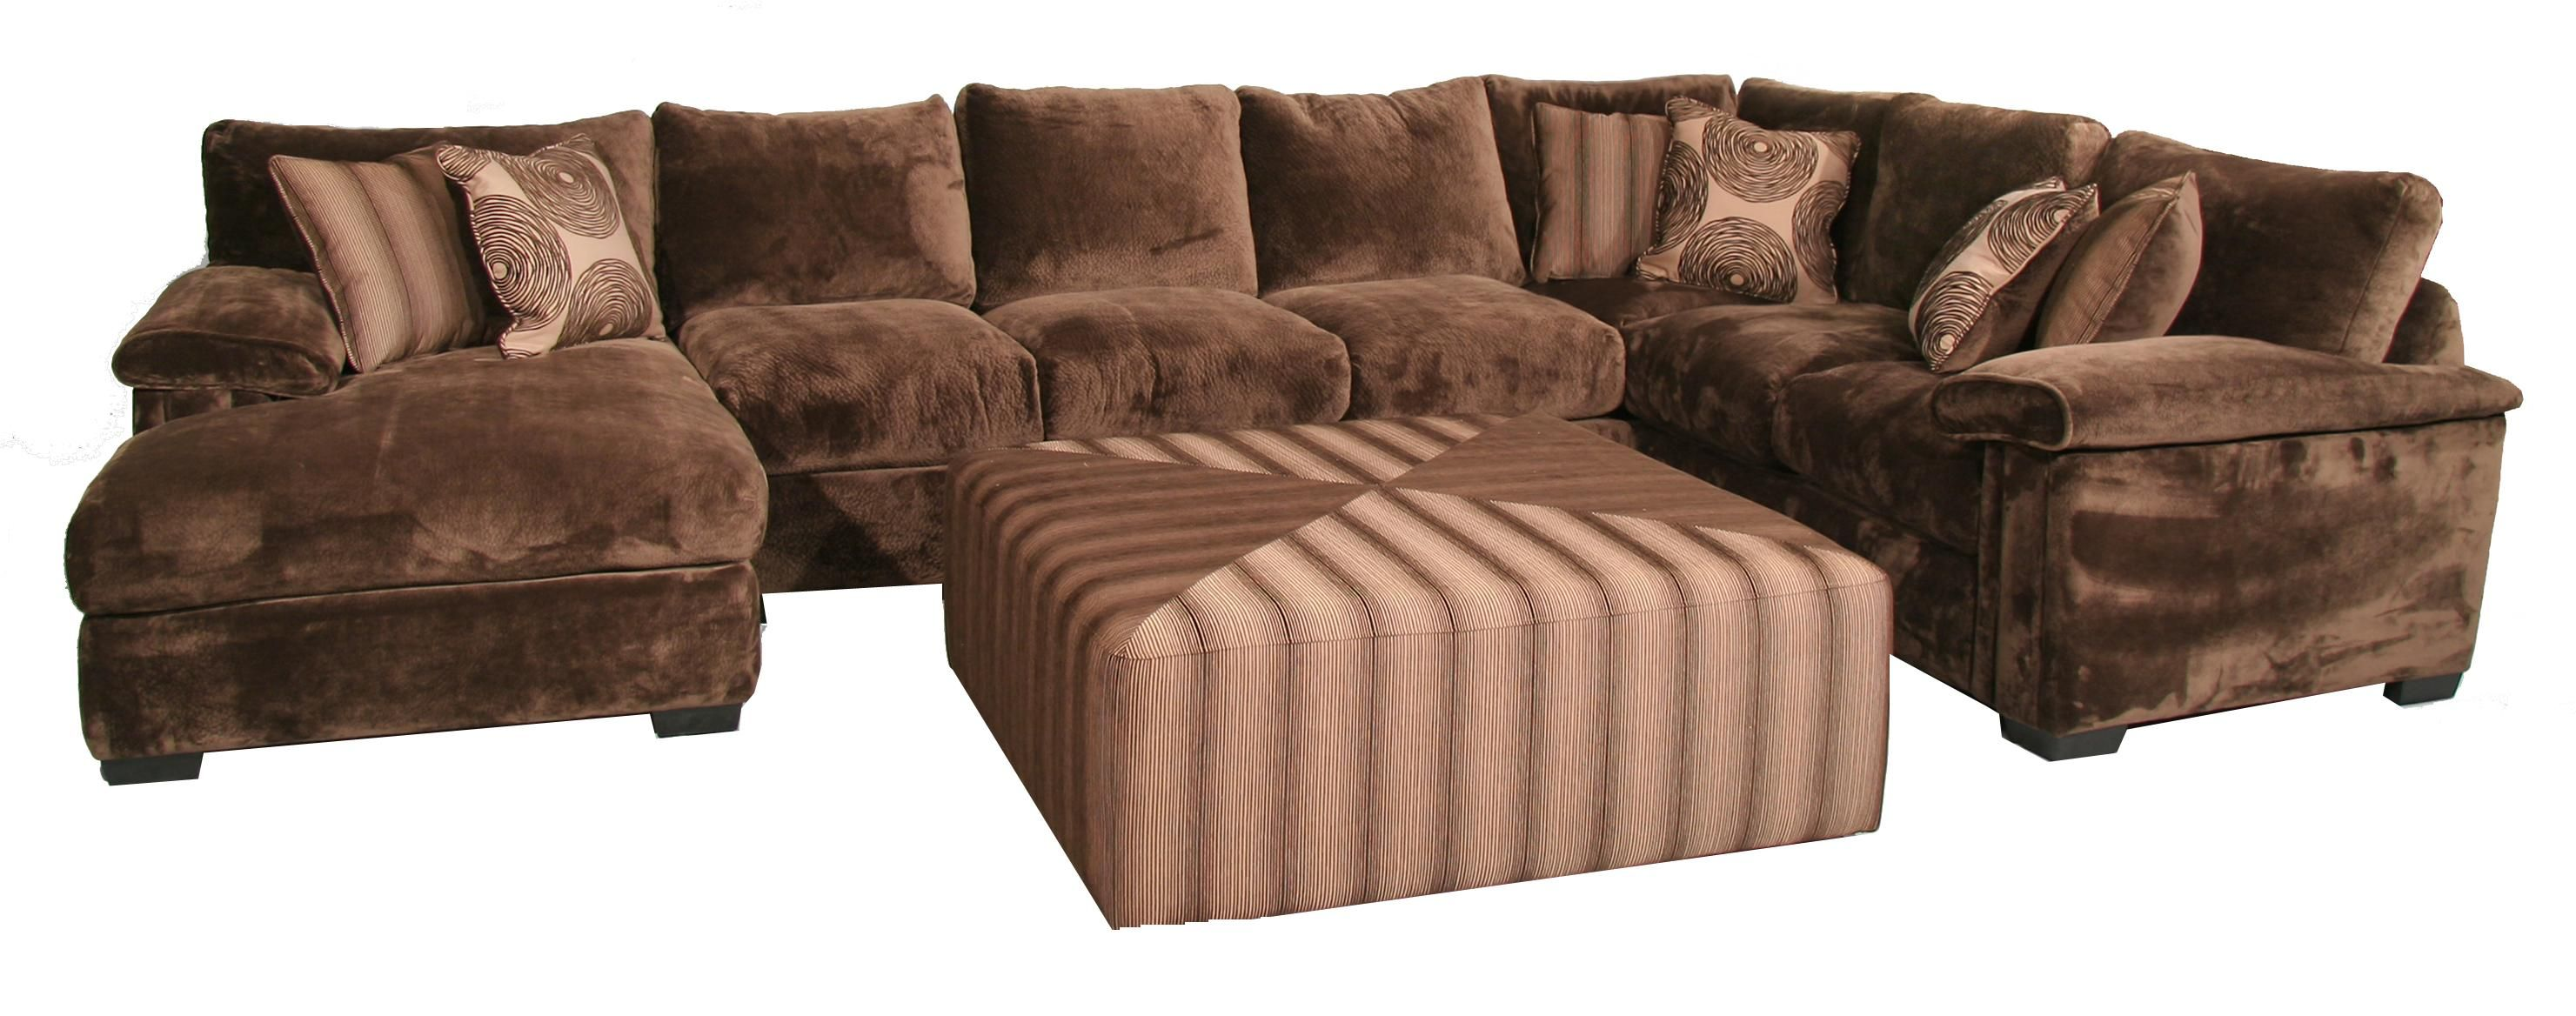 Lola 3 Piece Sectional Sofa By Fairmont Seating For The